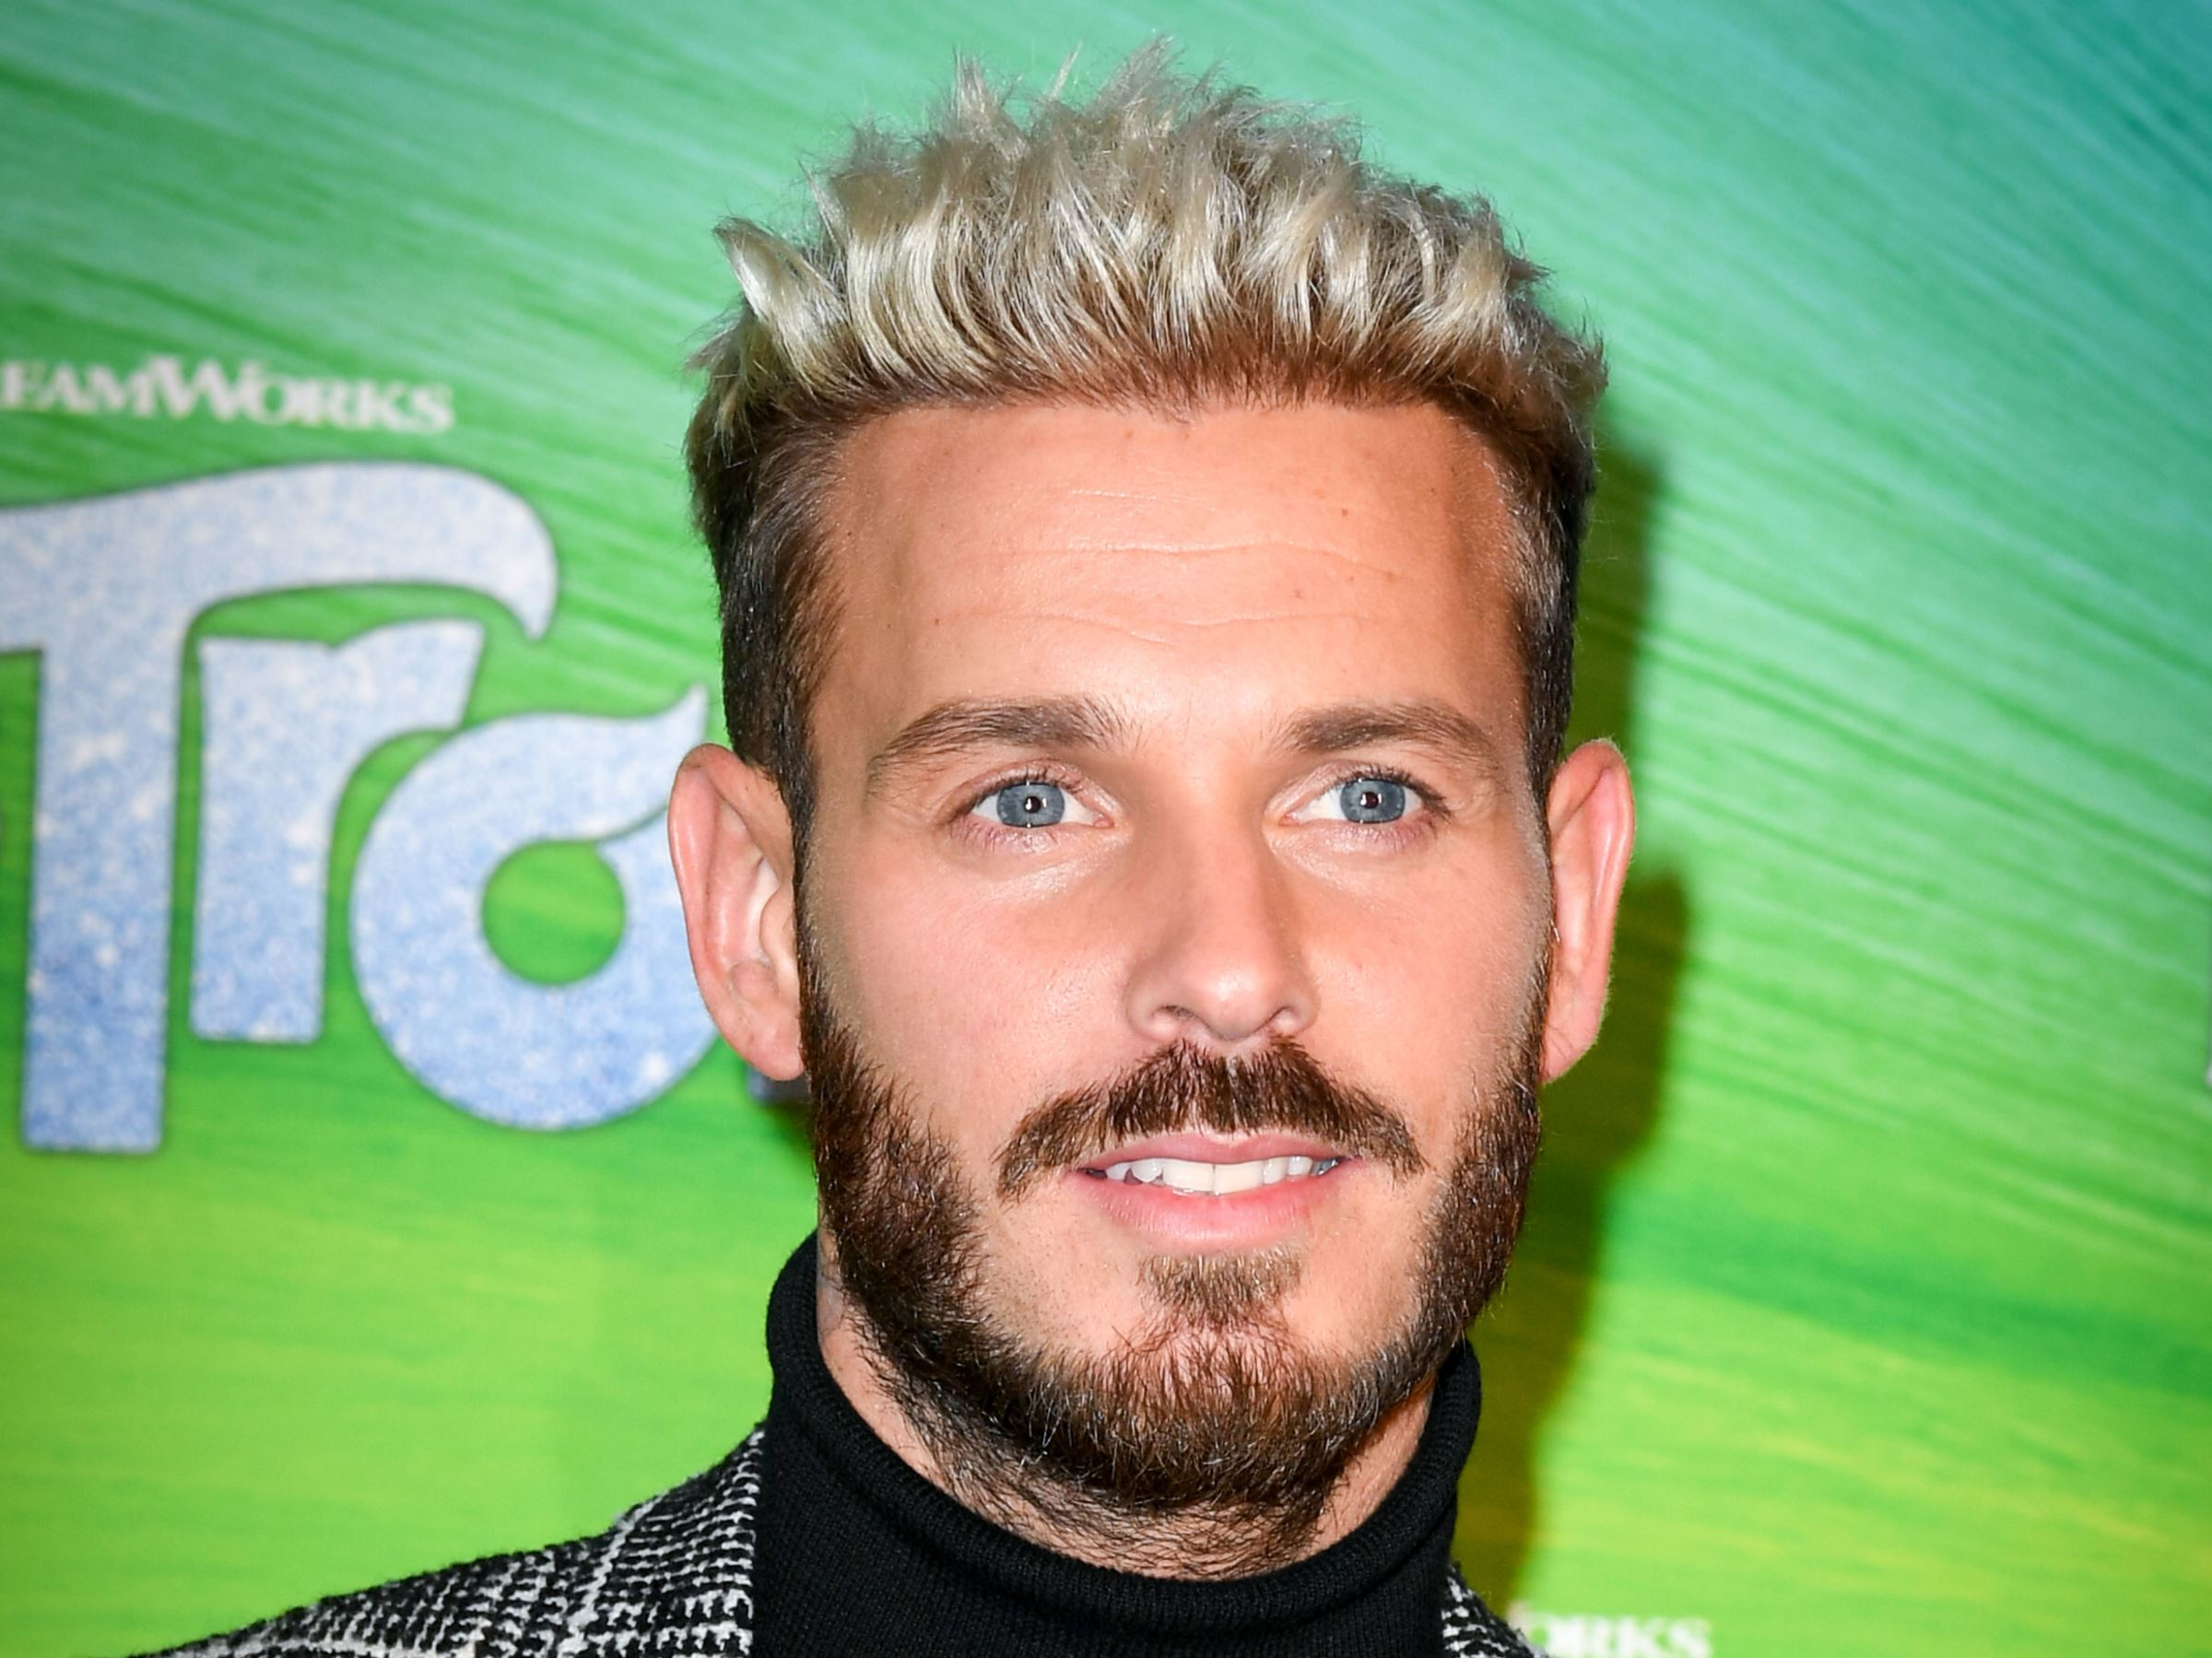 cv est ca la france pokora paroles